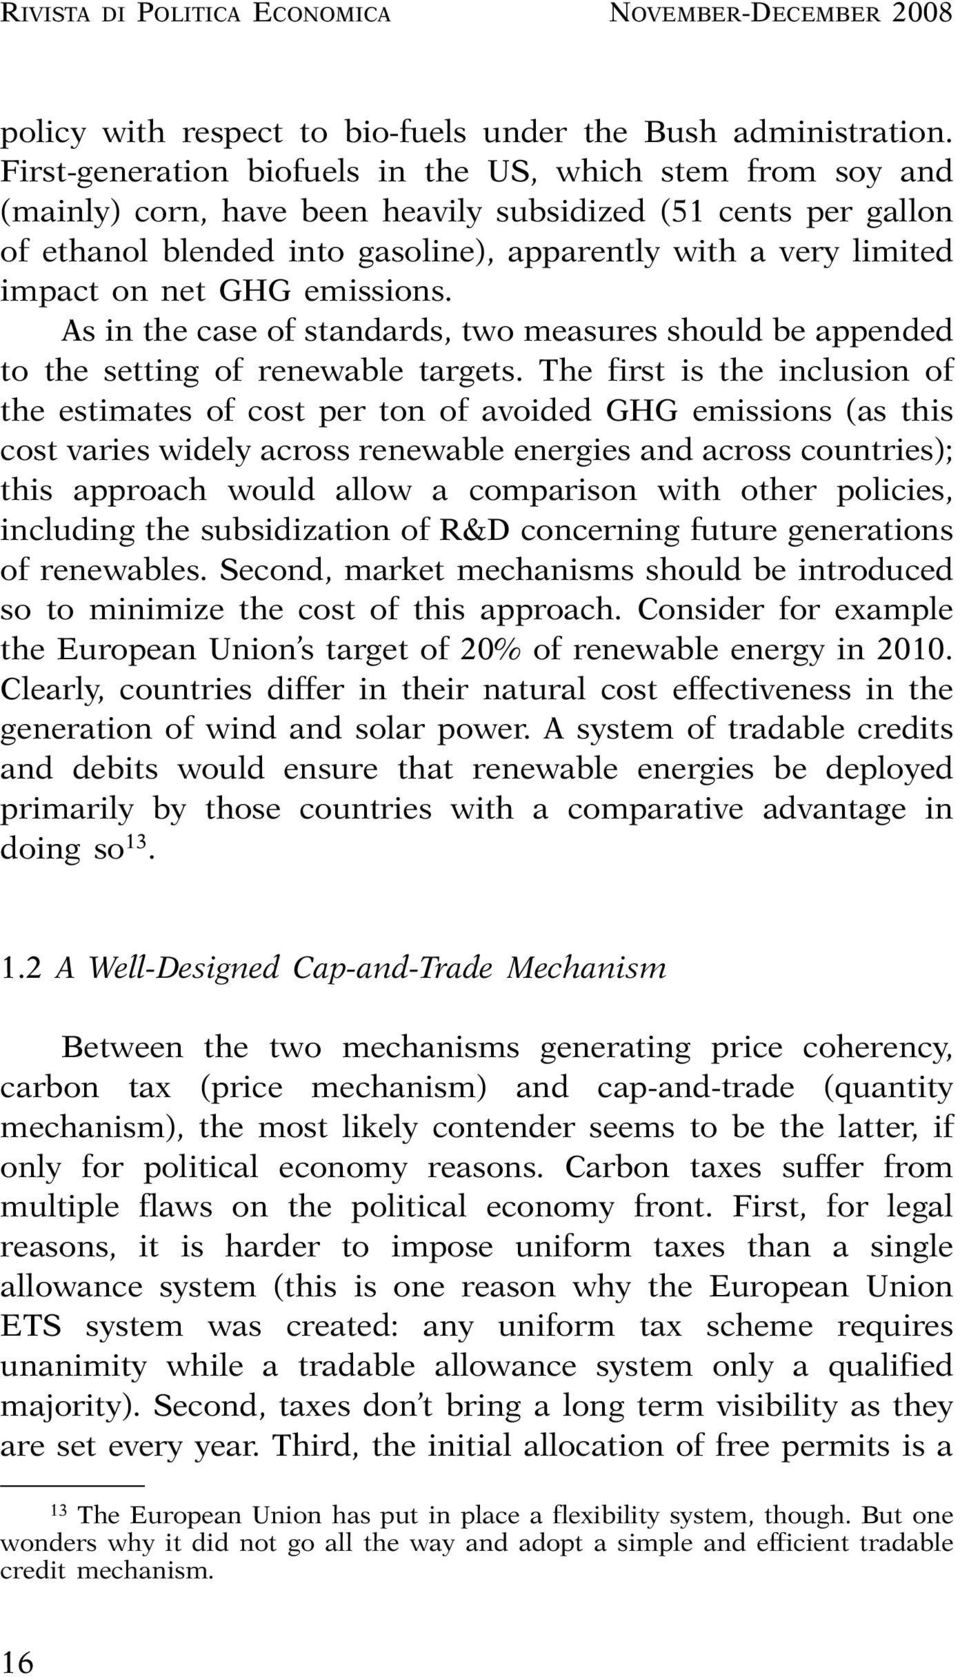 on net GHG emissions. As in the case of standards, two measures should be appended to the setting of renewable targets.